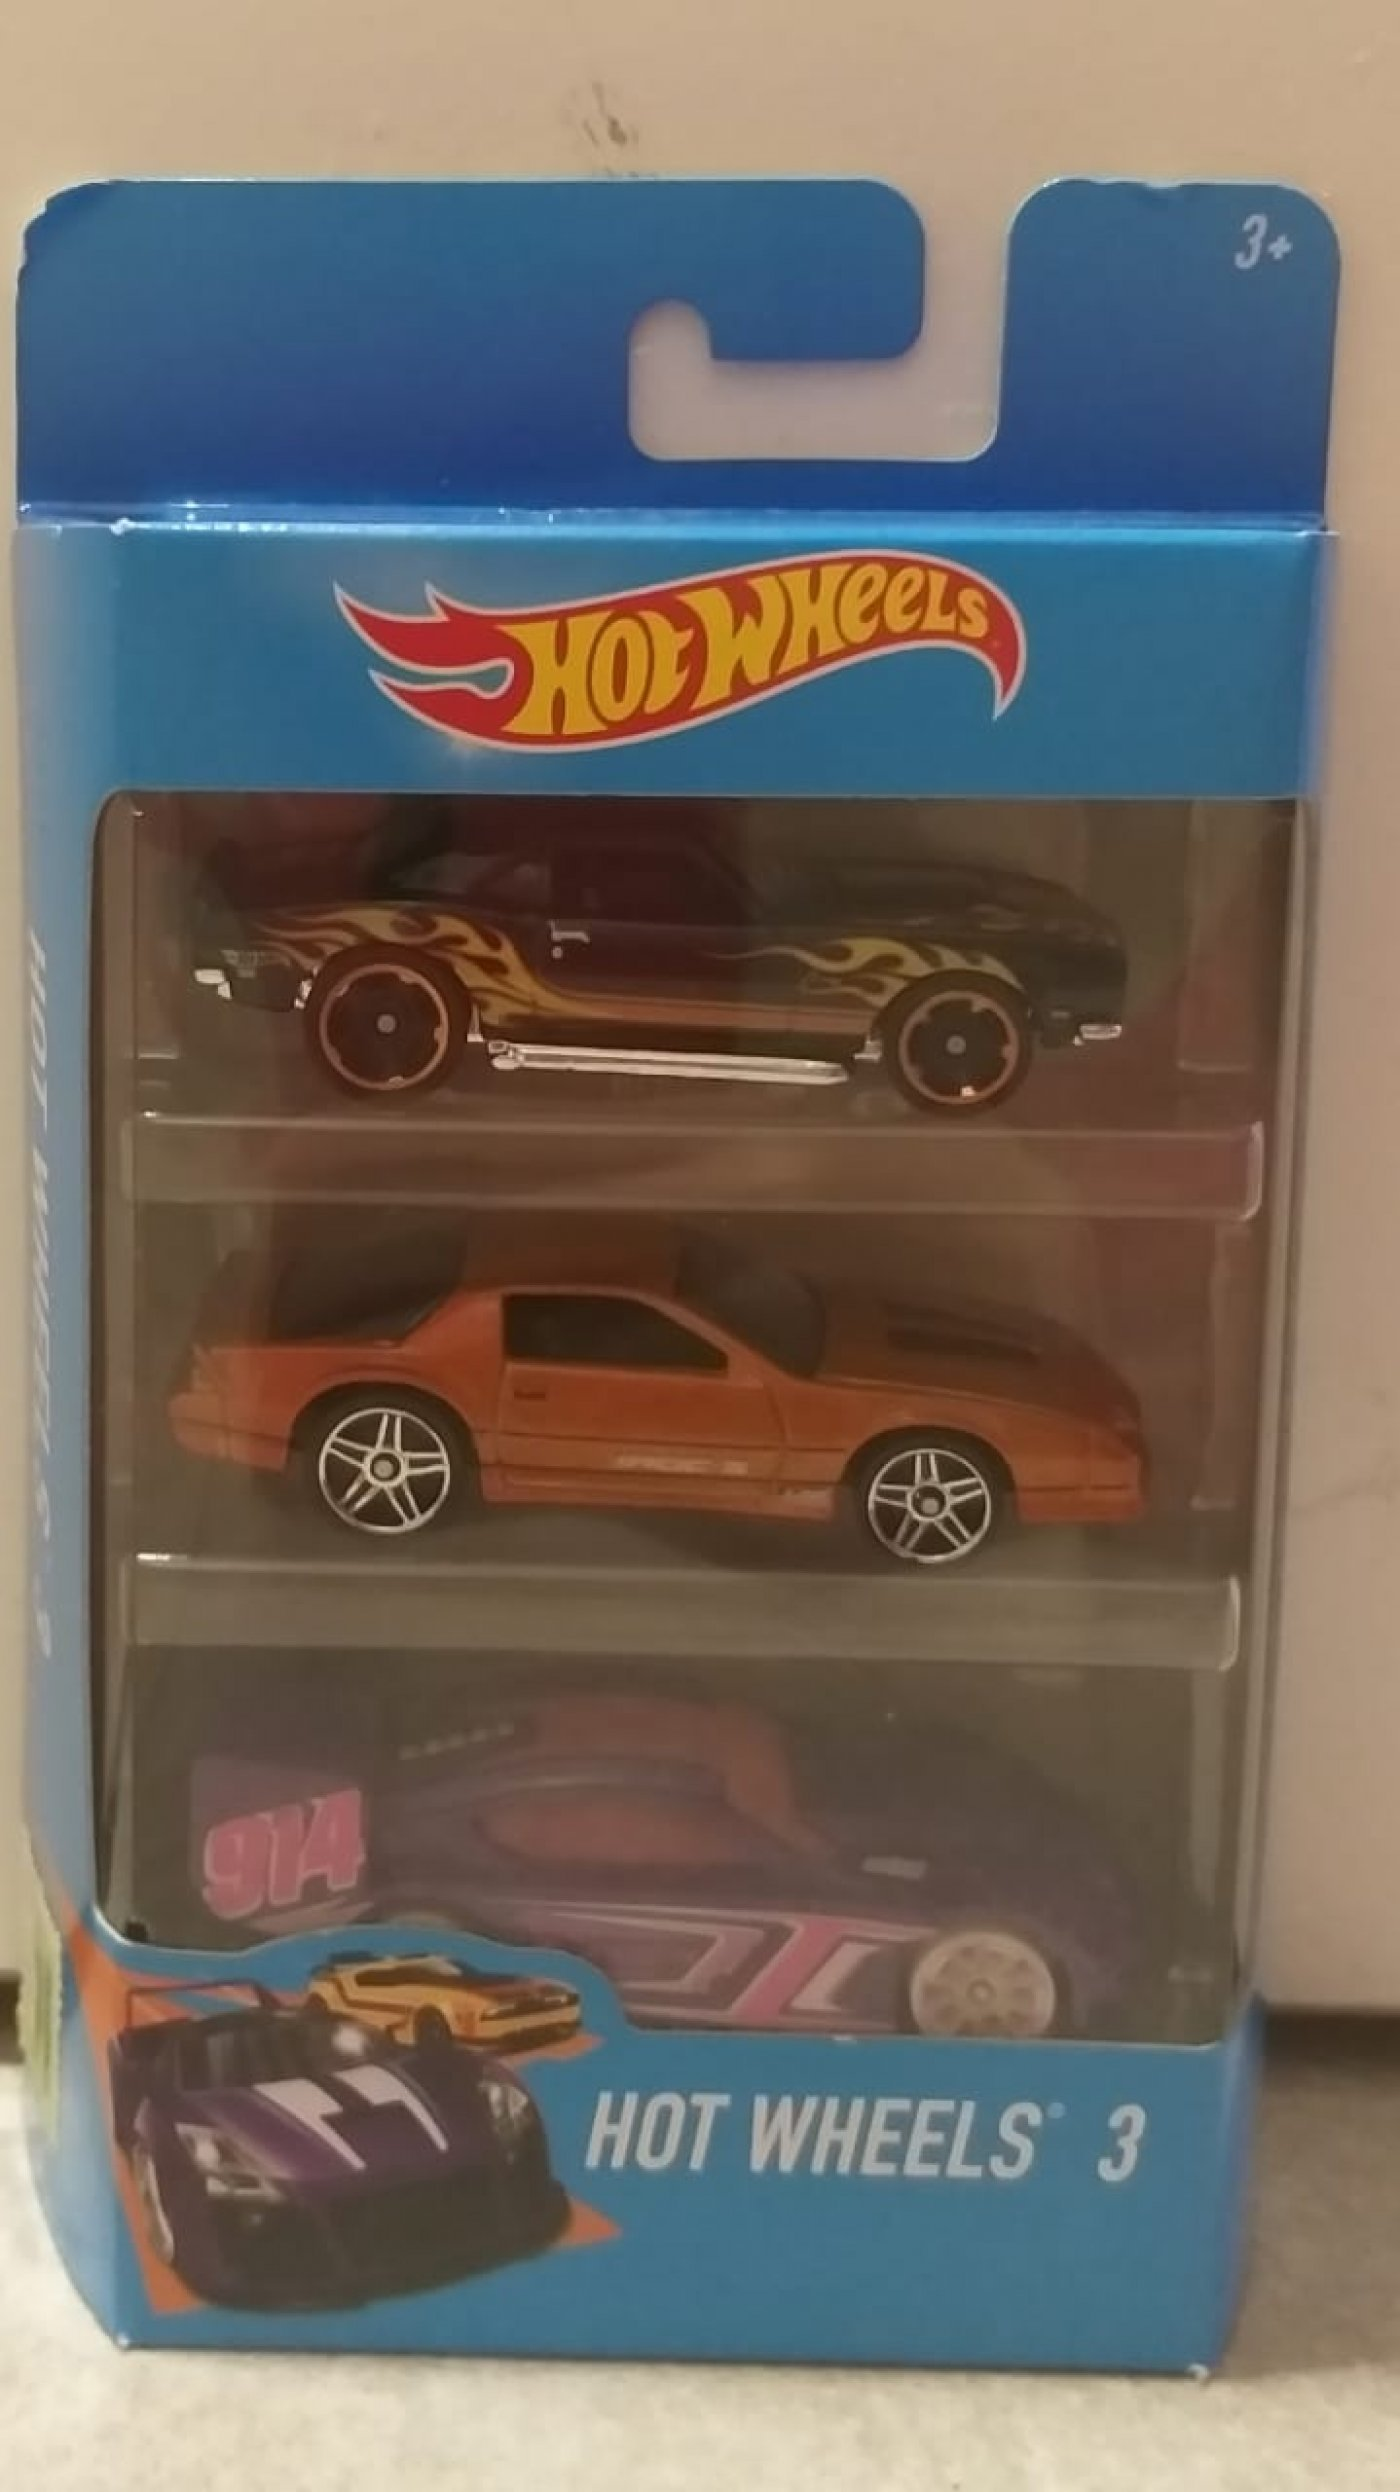 Hot Wheels Autitos caja x 3